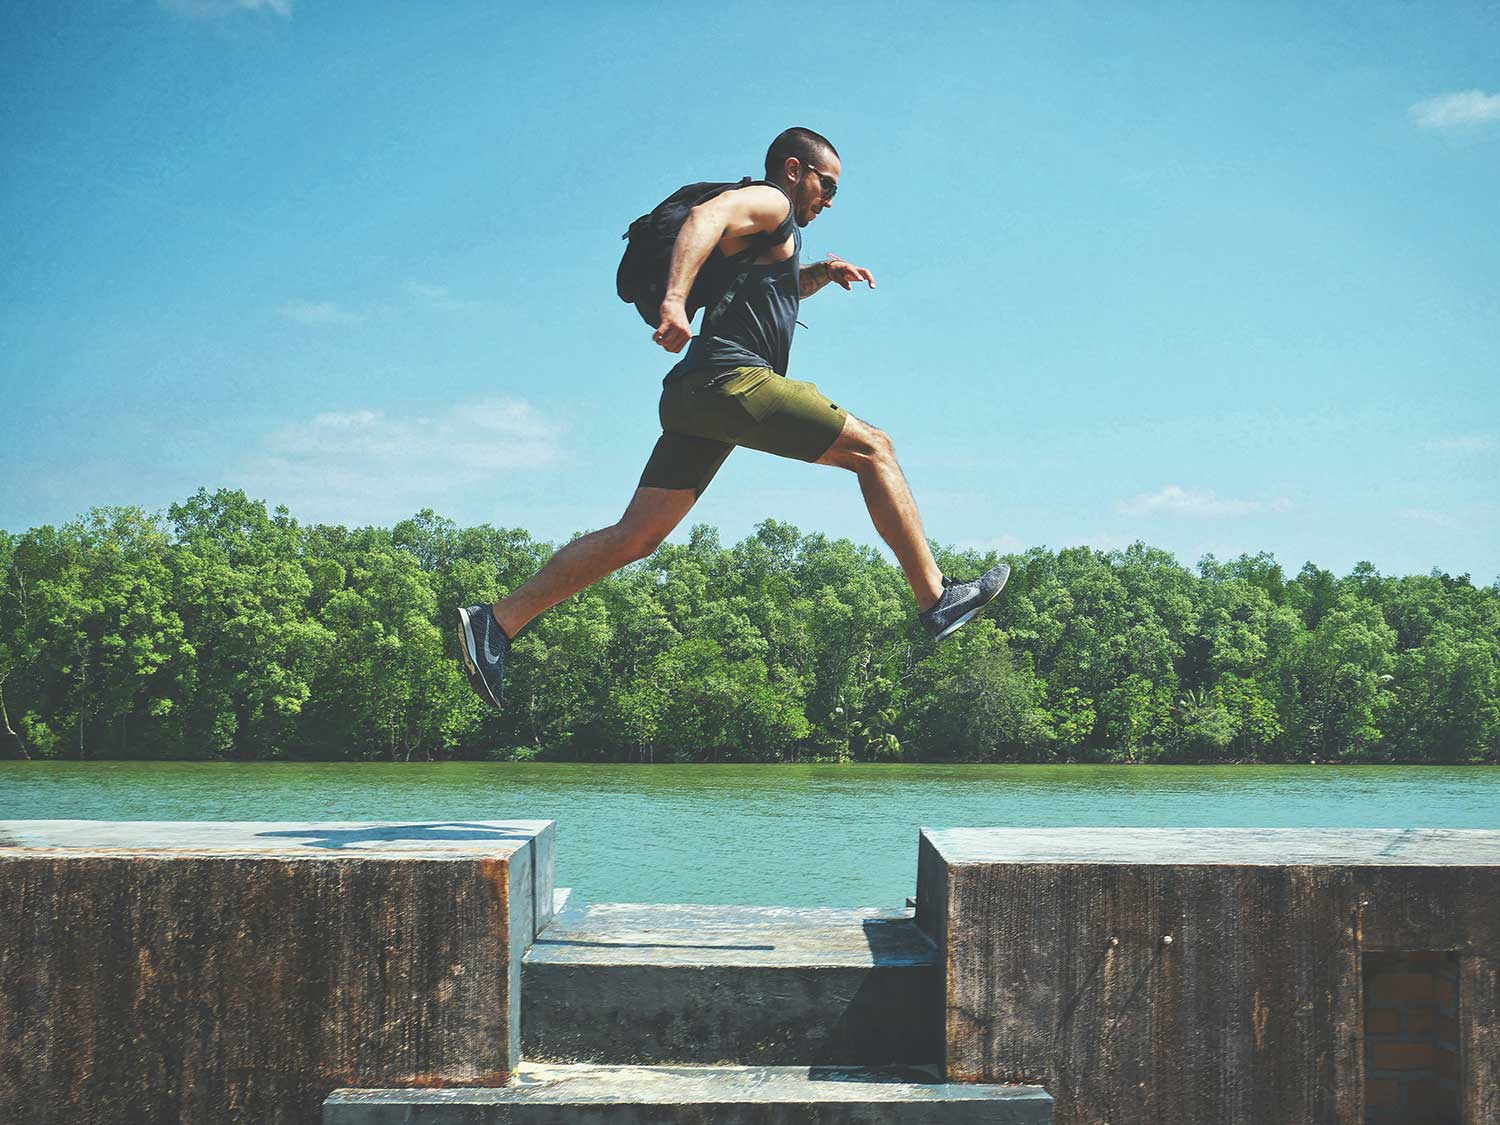 Man jumping over cement wall wearing athletic shorts.